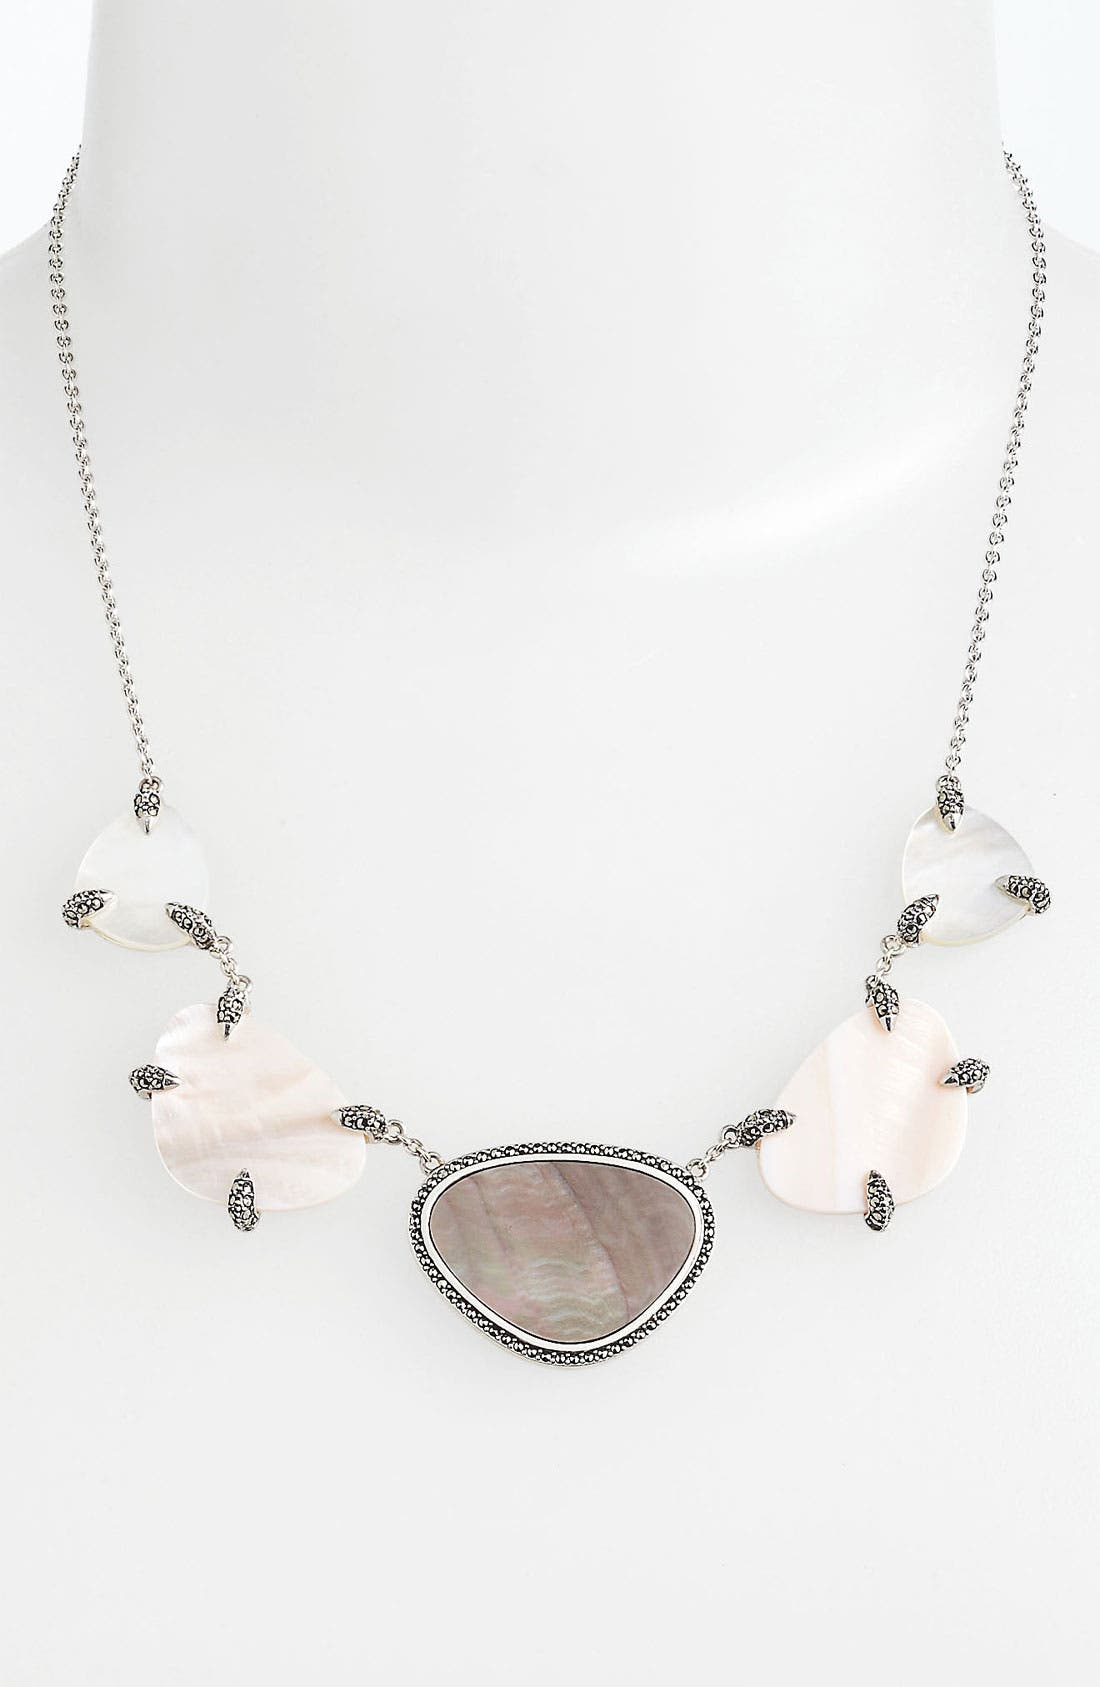 Main Image - Judith Jack Frontal Necklace